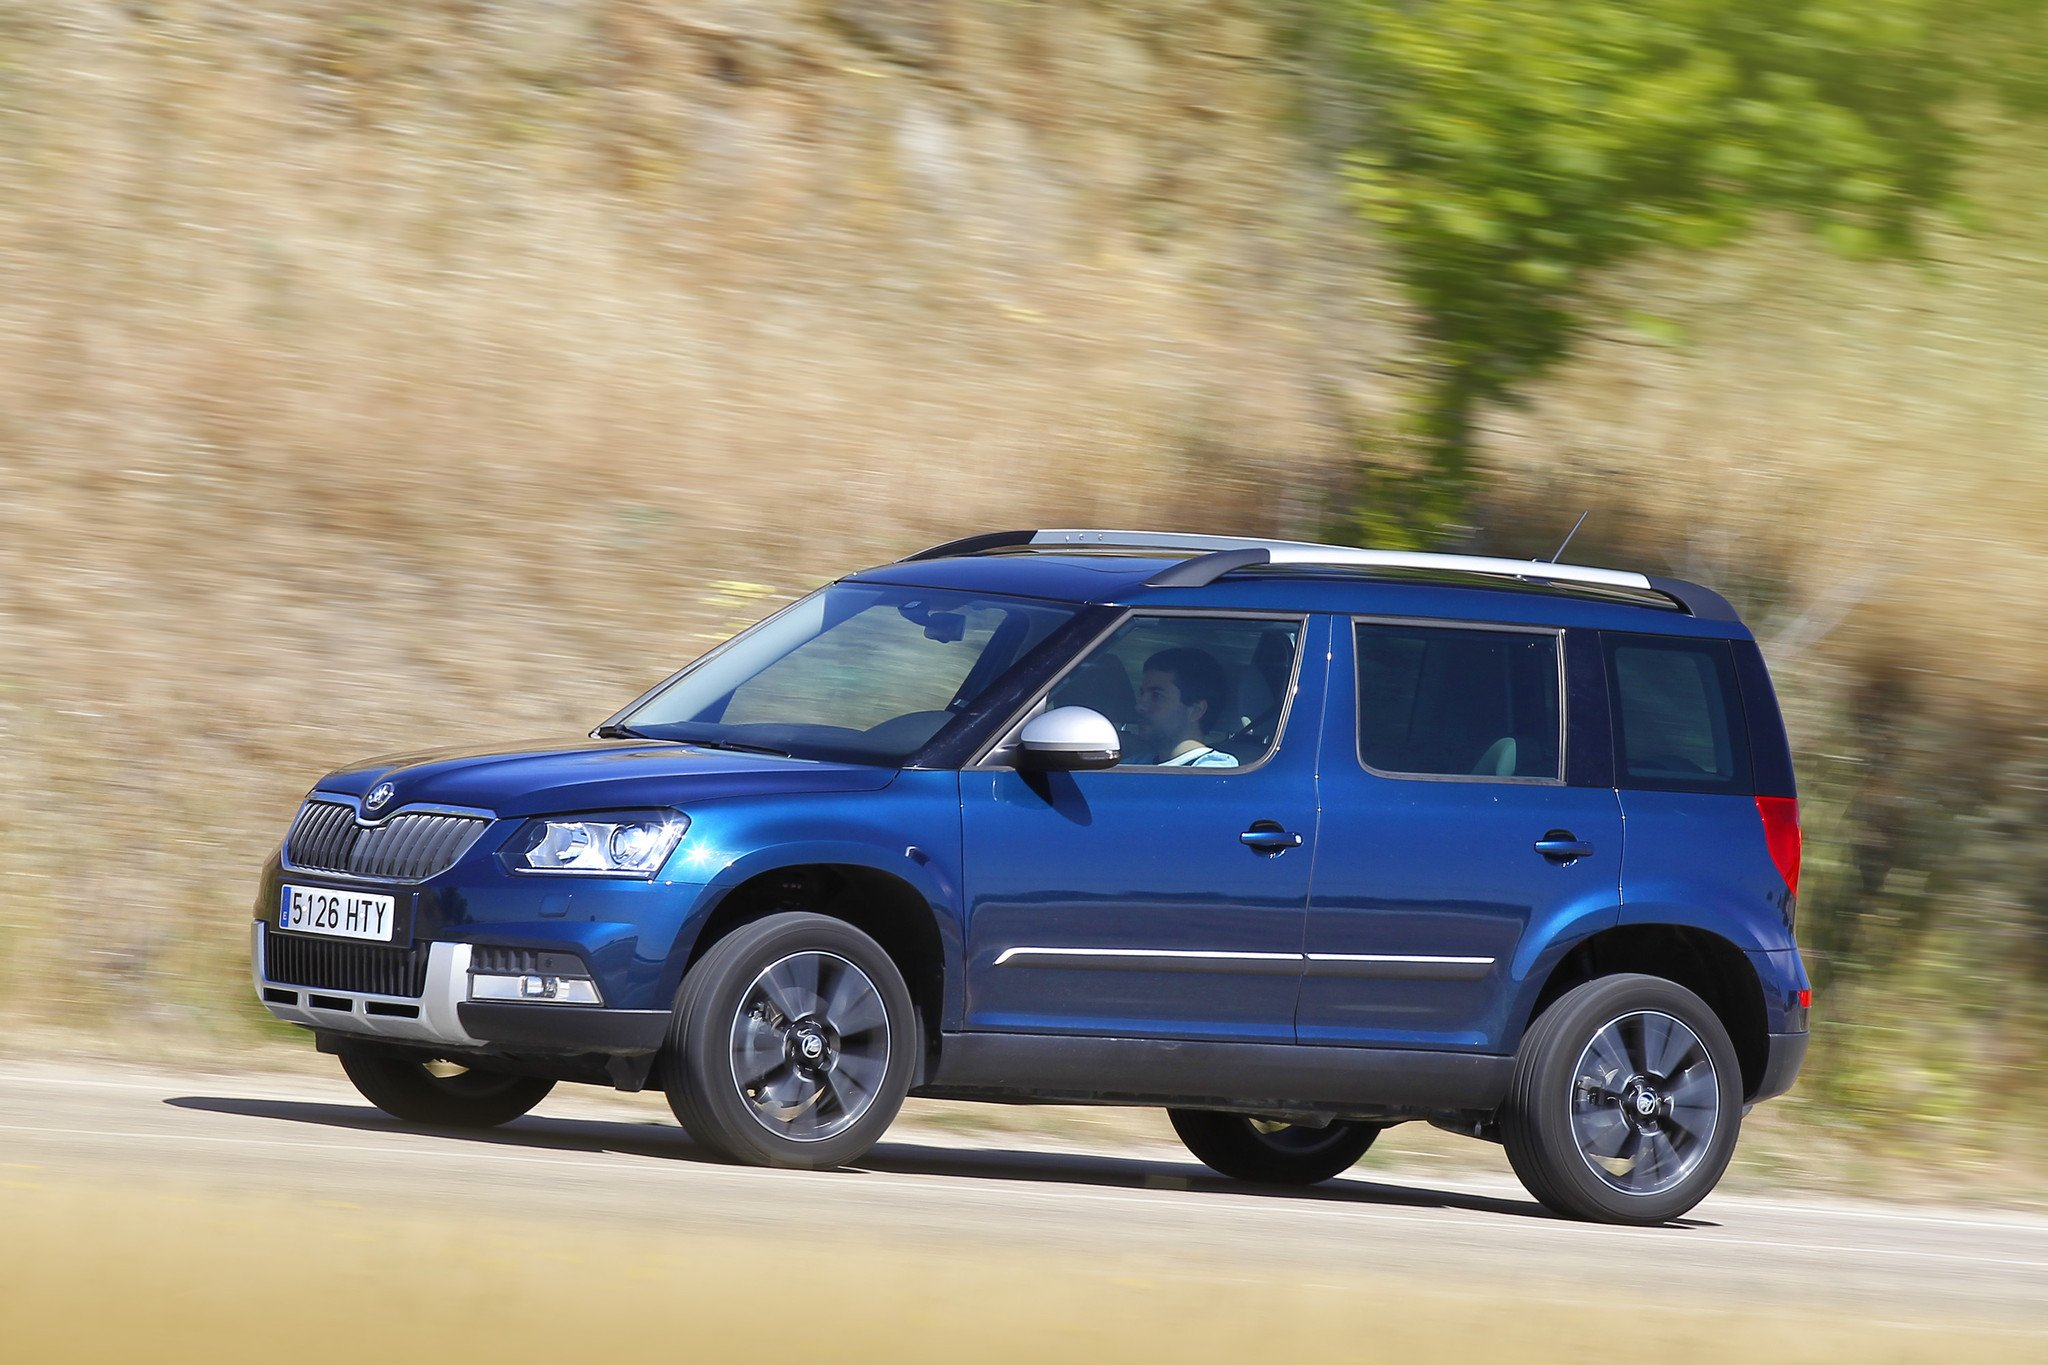 prueba skoda yeti 2 0 tdi 4x4 campo o ciudad. Black Bedroom Furniture Sets. Home Design Ideas